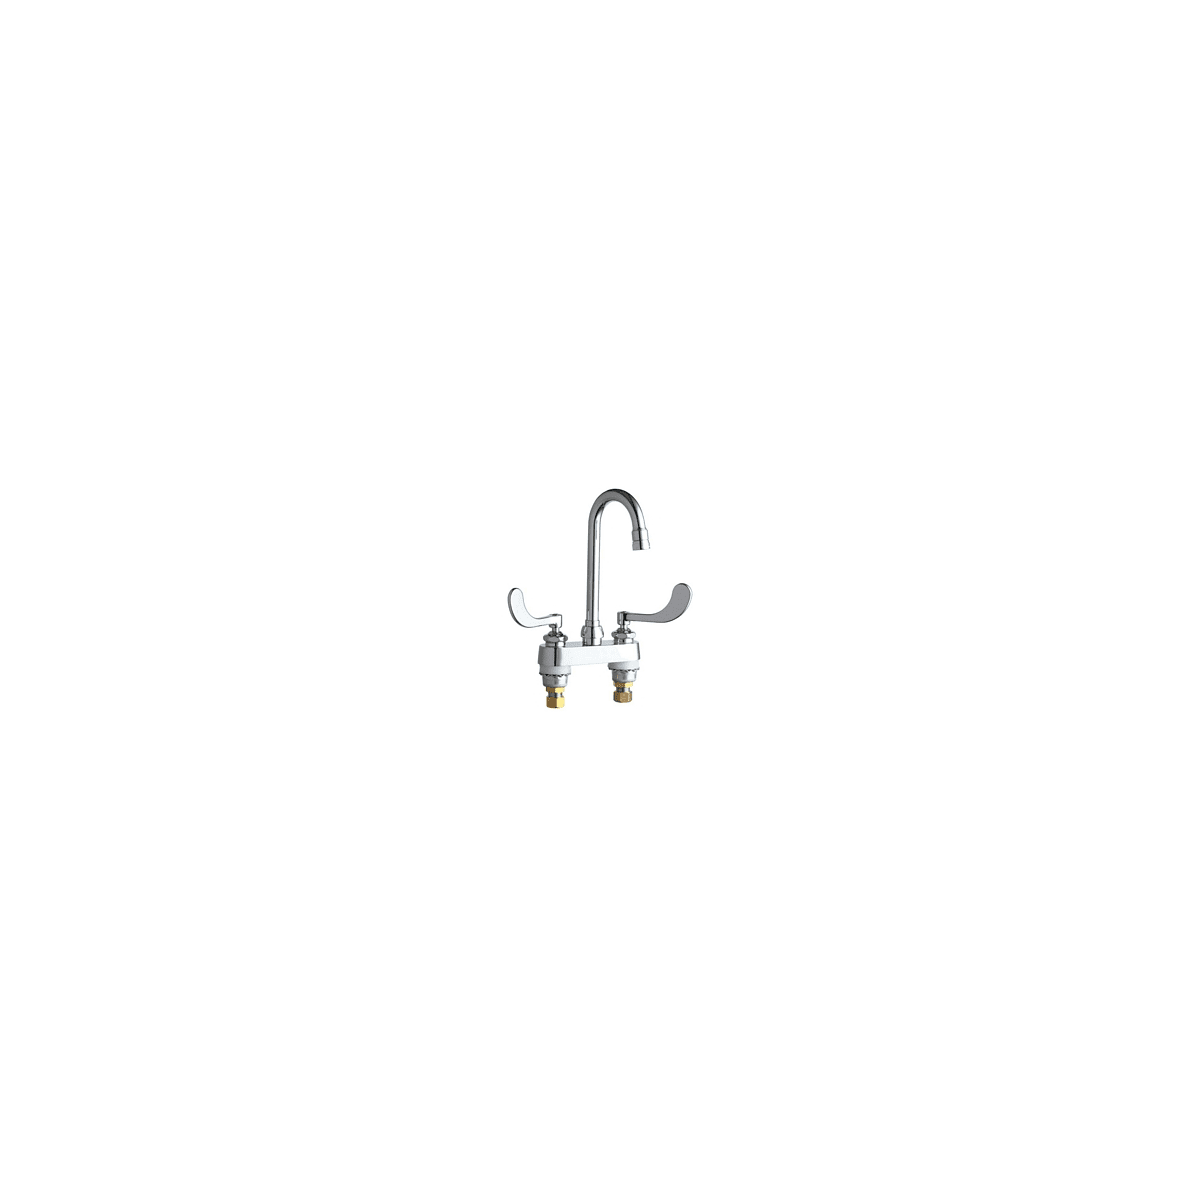 "Chicago Faucets Commercial Grade Centerset Bathroom Faucet with Wrist Blade Handles - 4"" Faucet Centers"